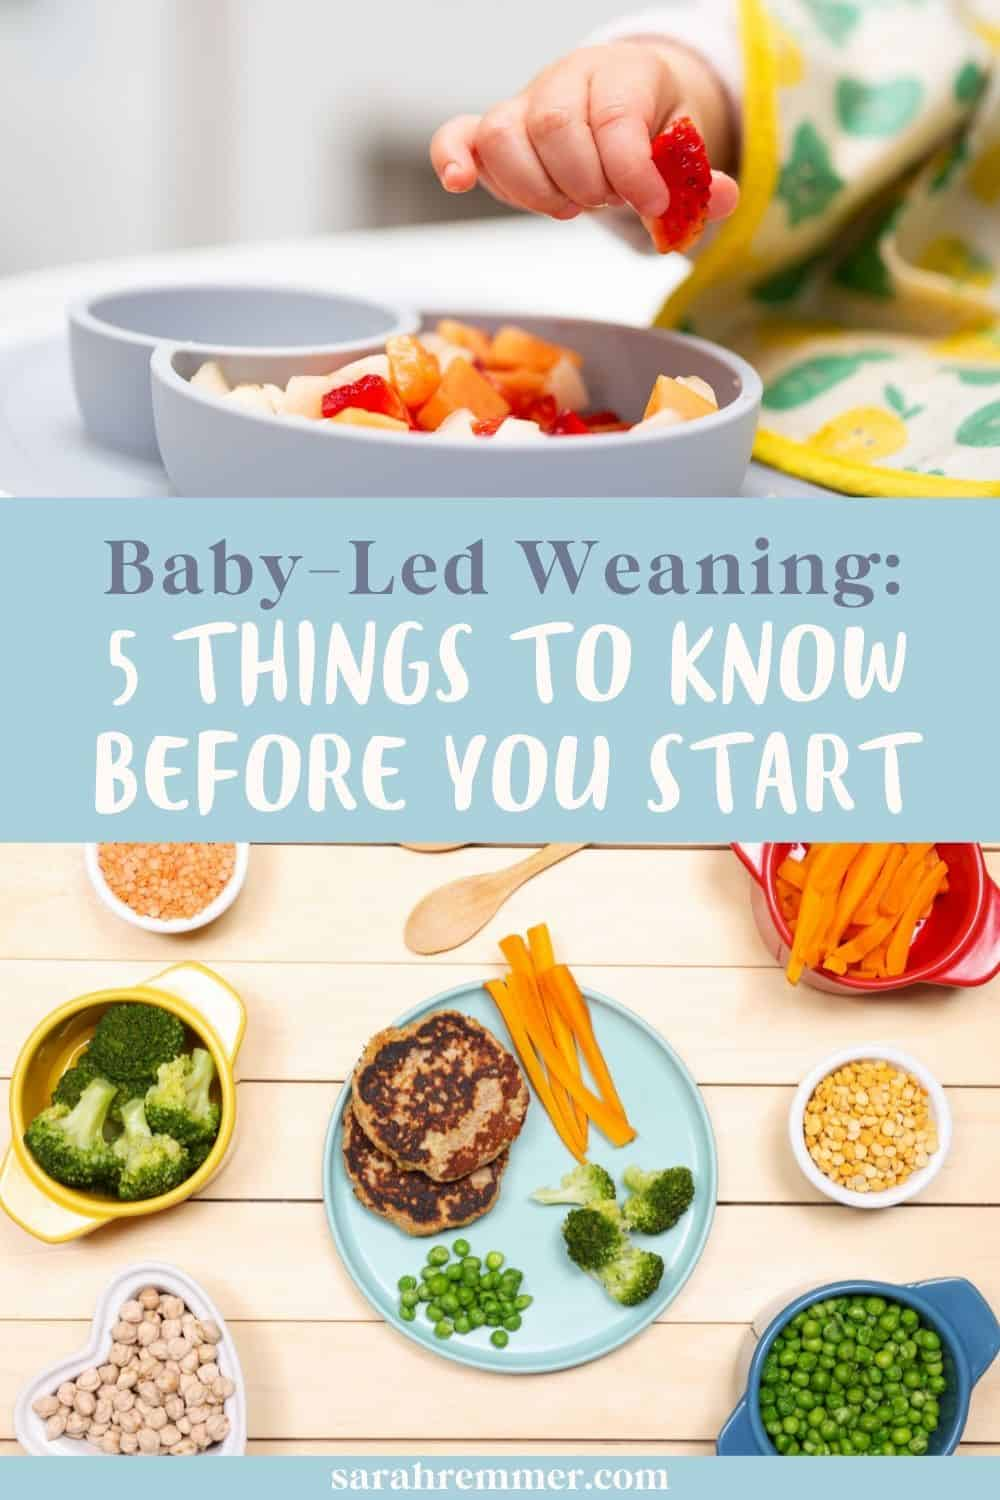 Baby-Led Weaning 5 Things to Know Before you Start